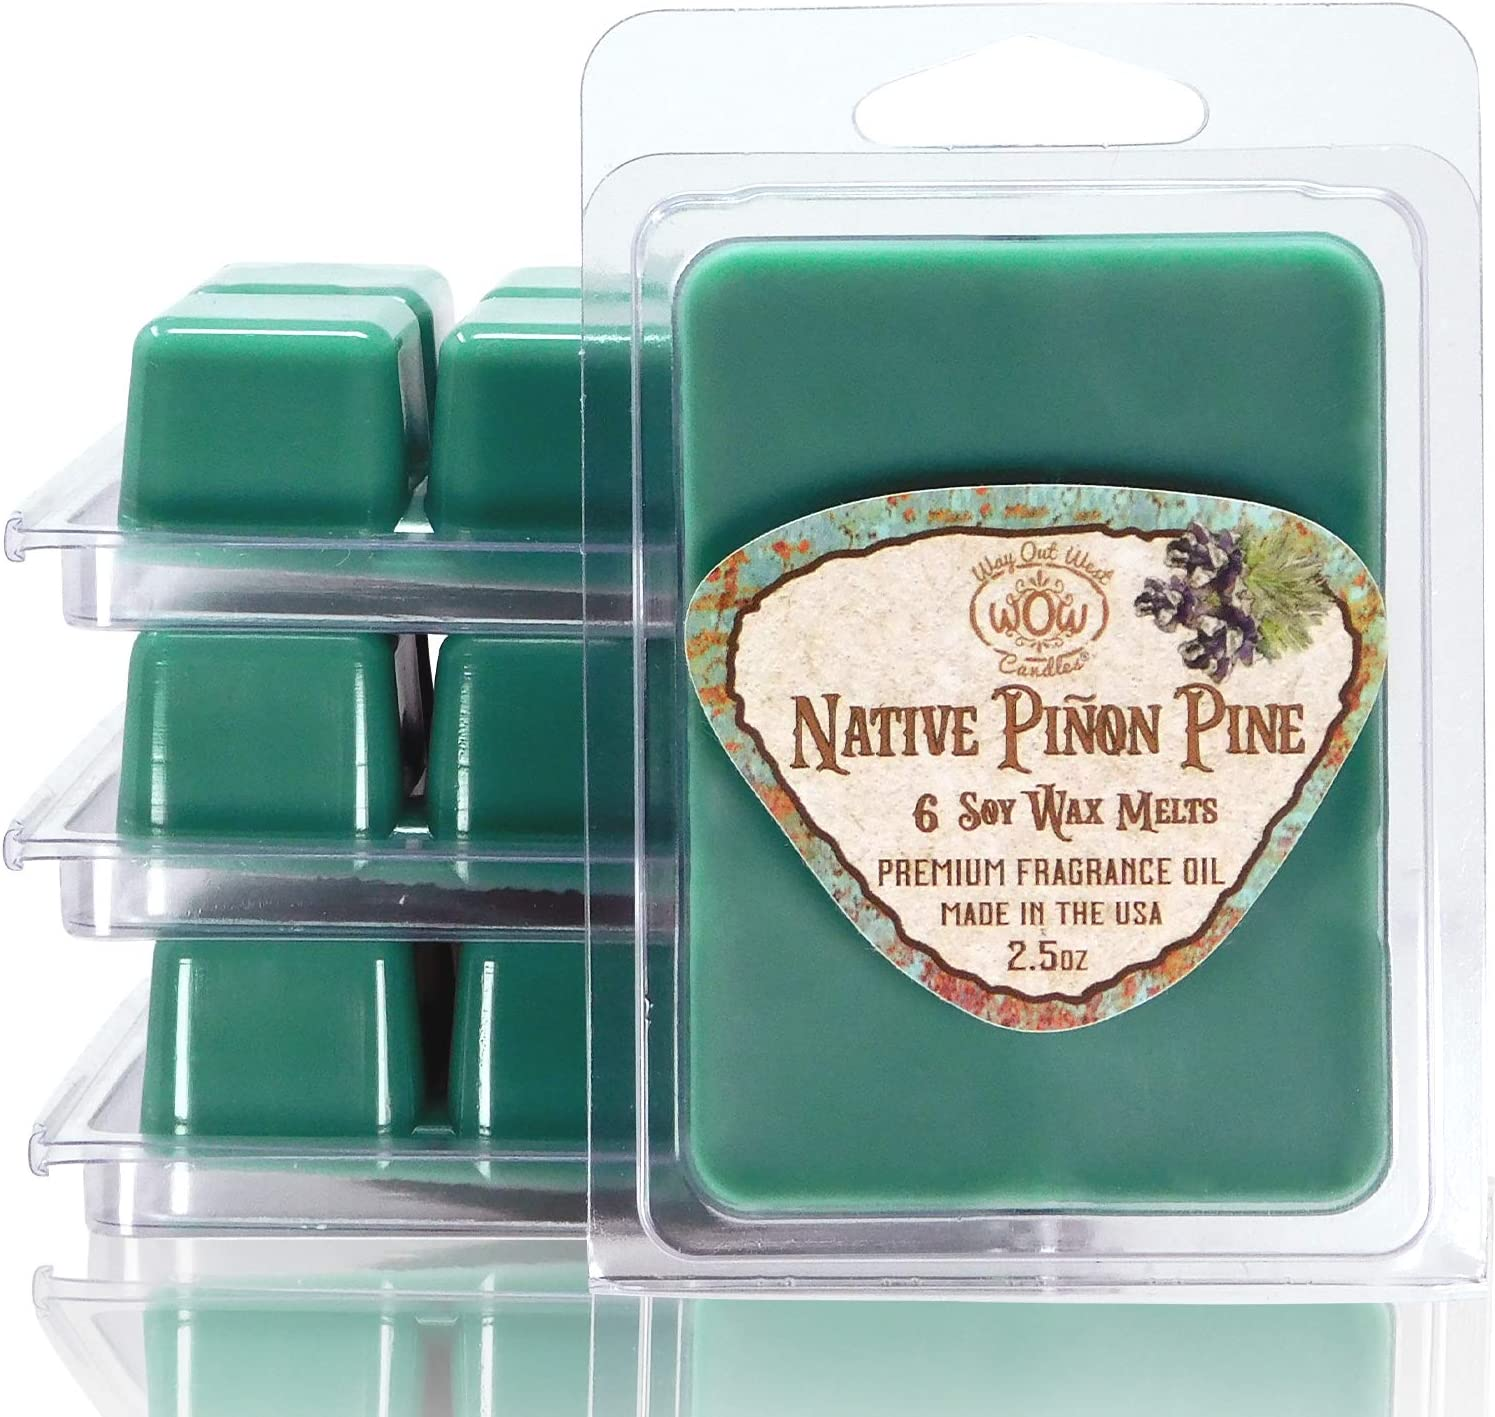 Way Out West Candles - Scented Wax Melts - Highly Fragrant Air Freshener - 4 Pack Set of 6 Melt Cubes (4, Native Piñon Pine)